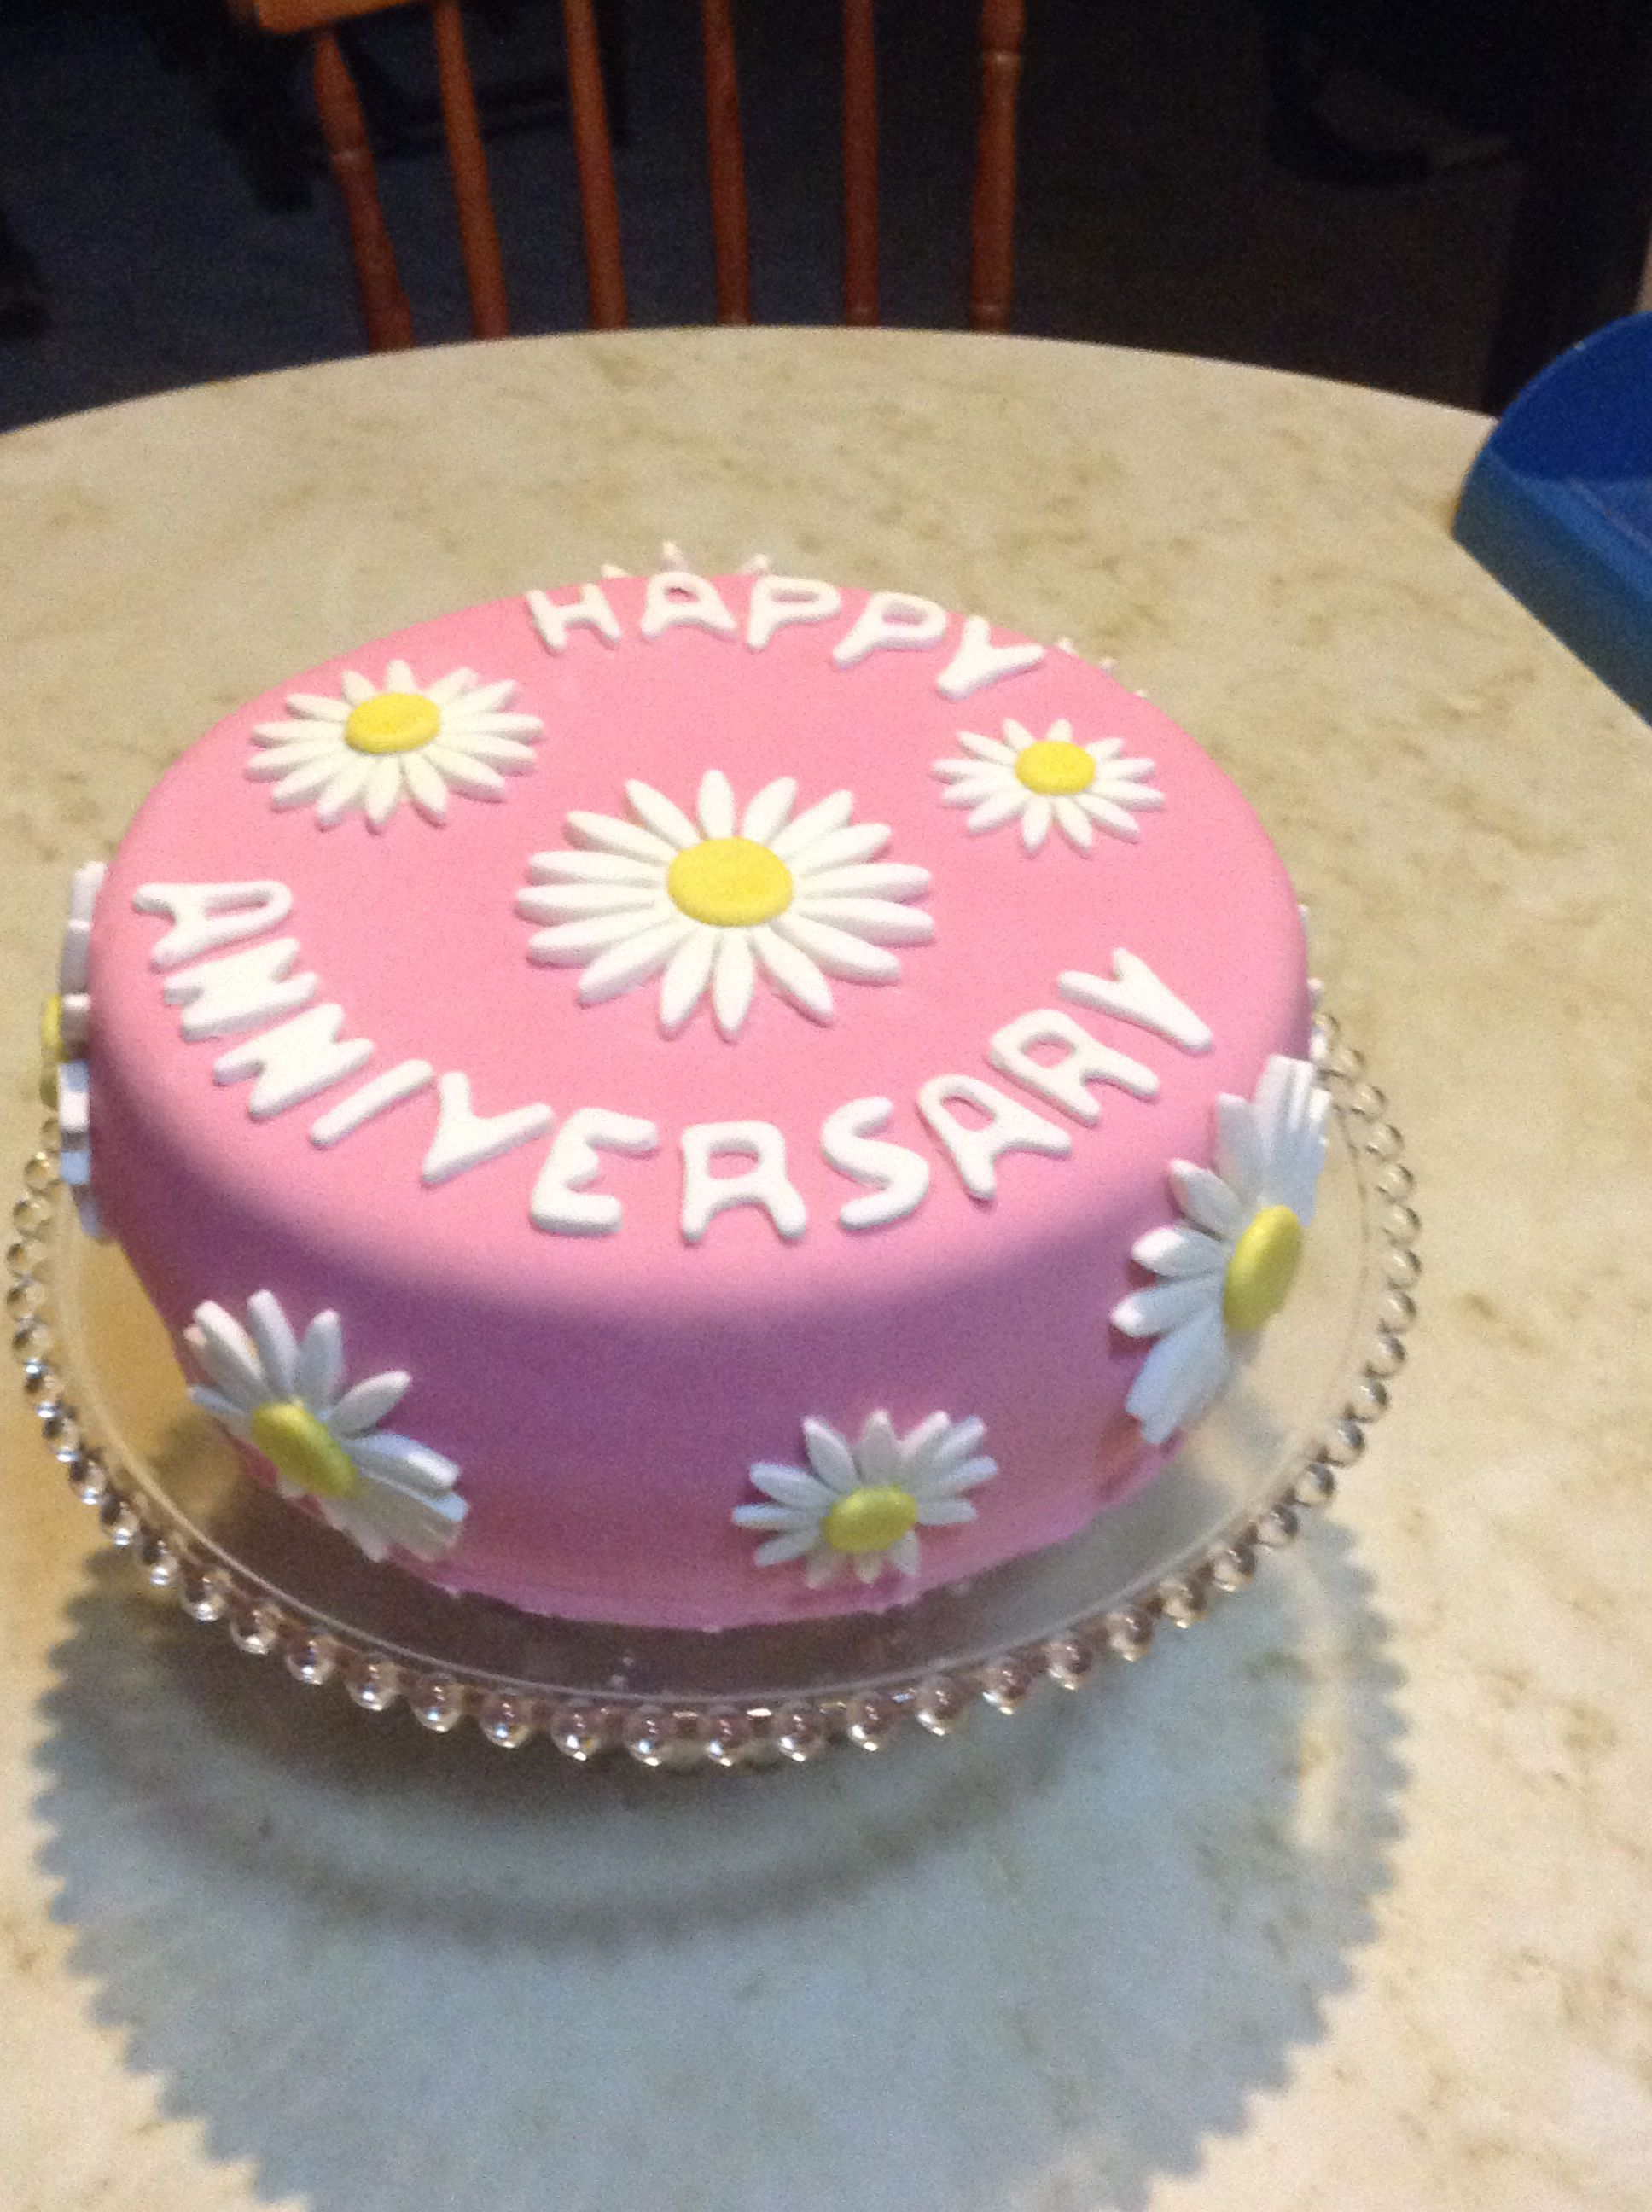 61st Wedding Anniversary Cake for my parents   My cakes   Pinterest ...